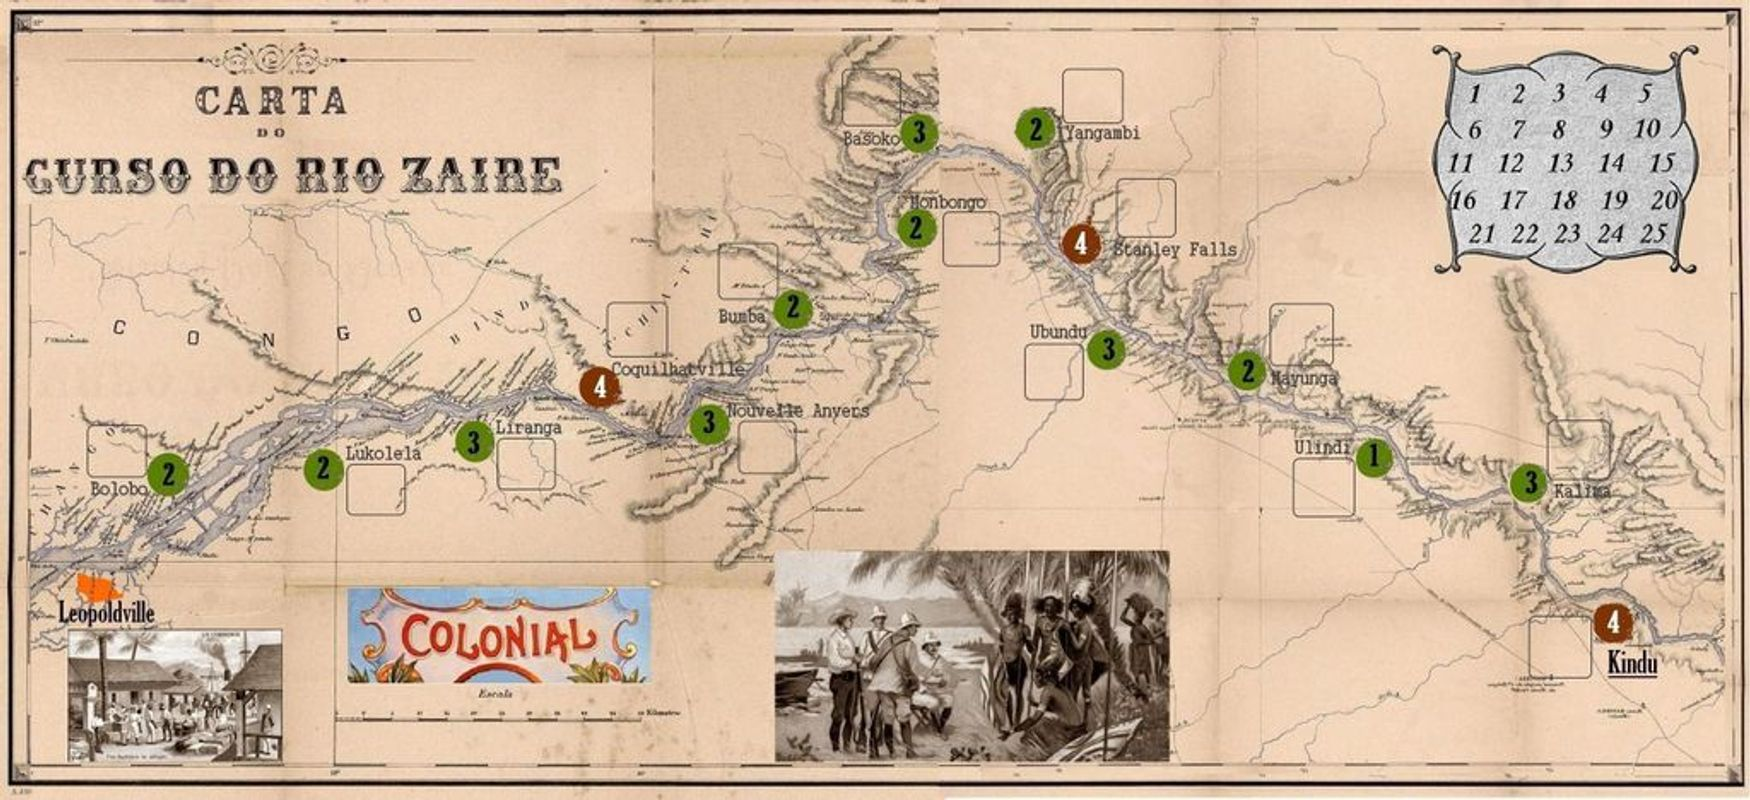 Expedition: Congo River 1884 game board